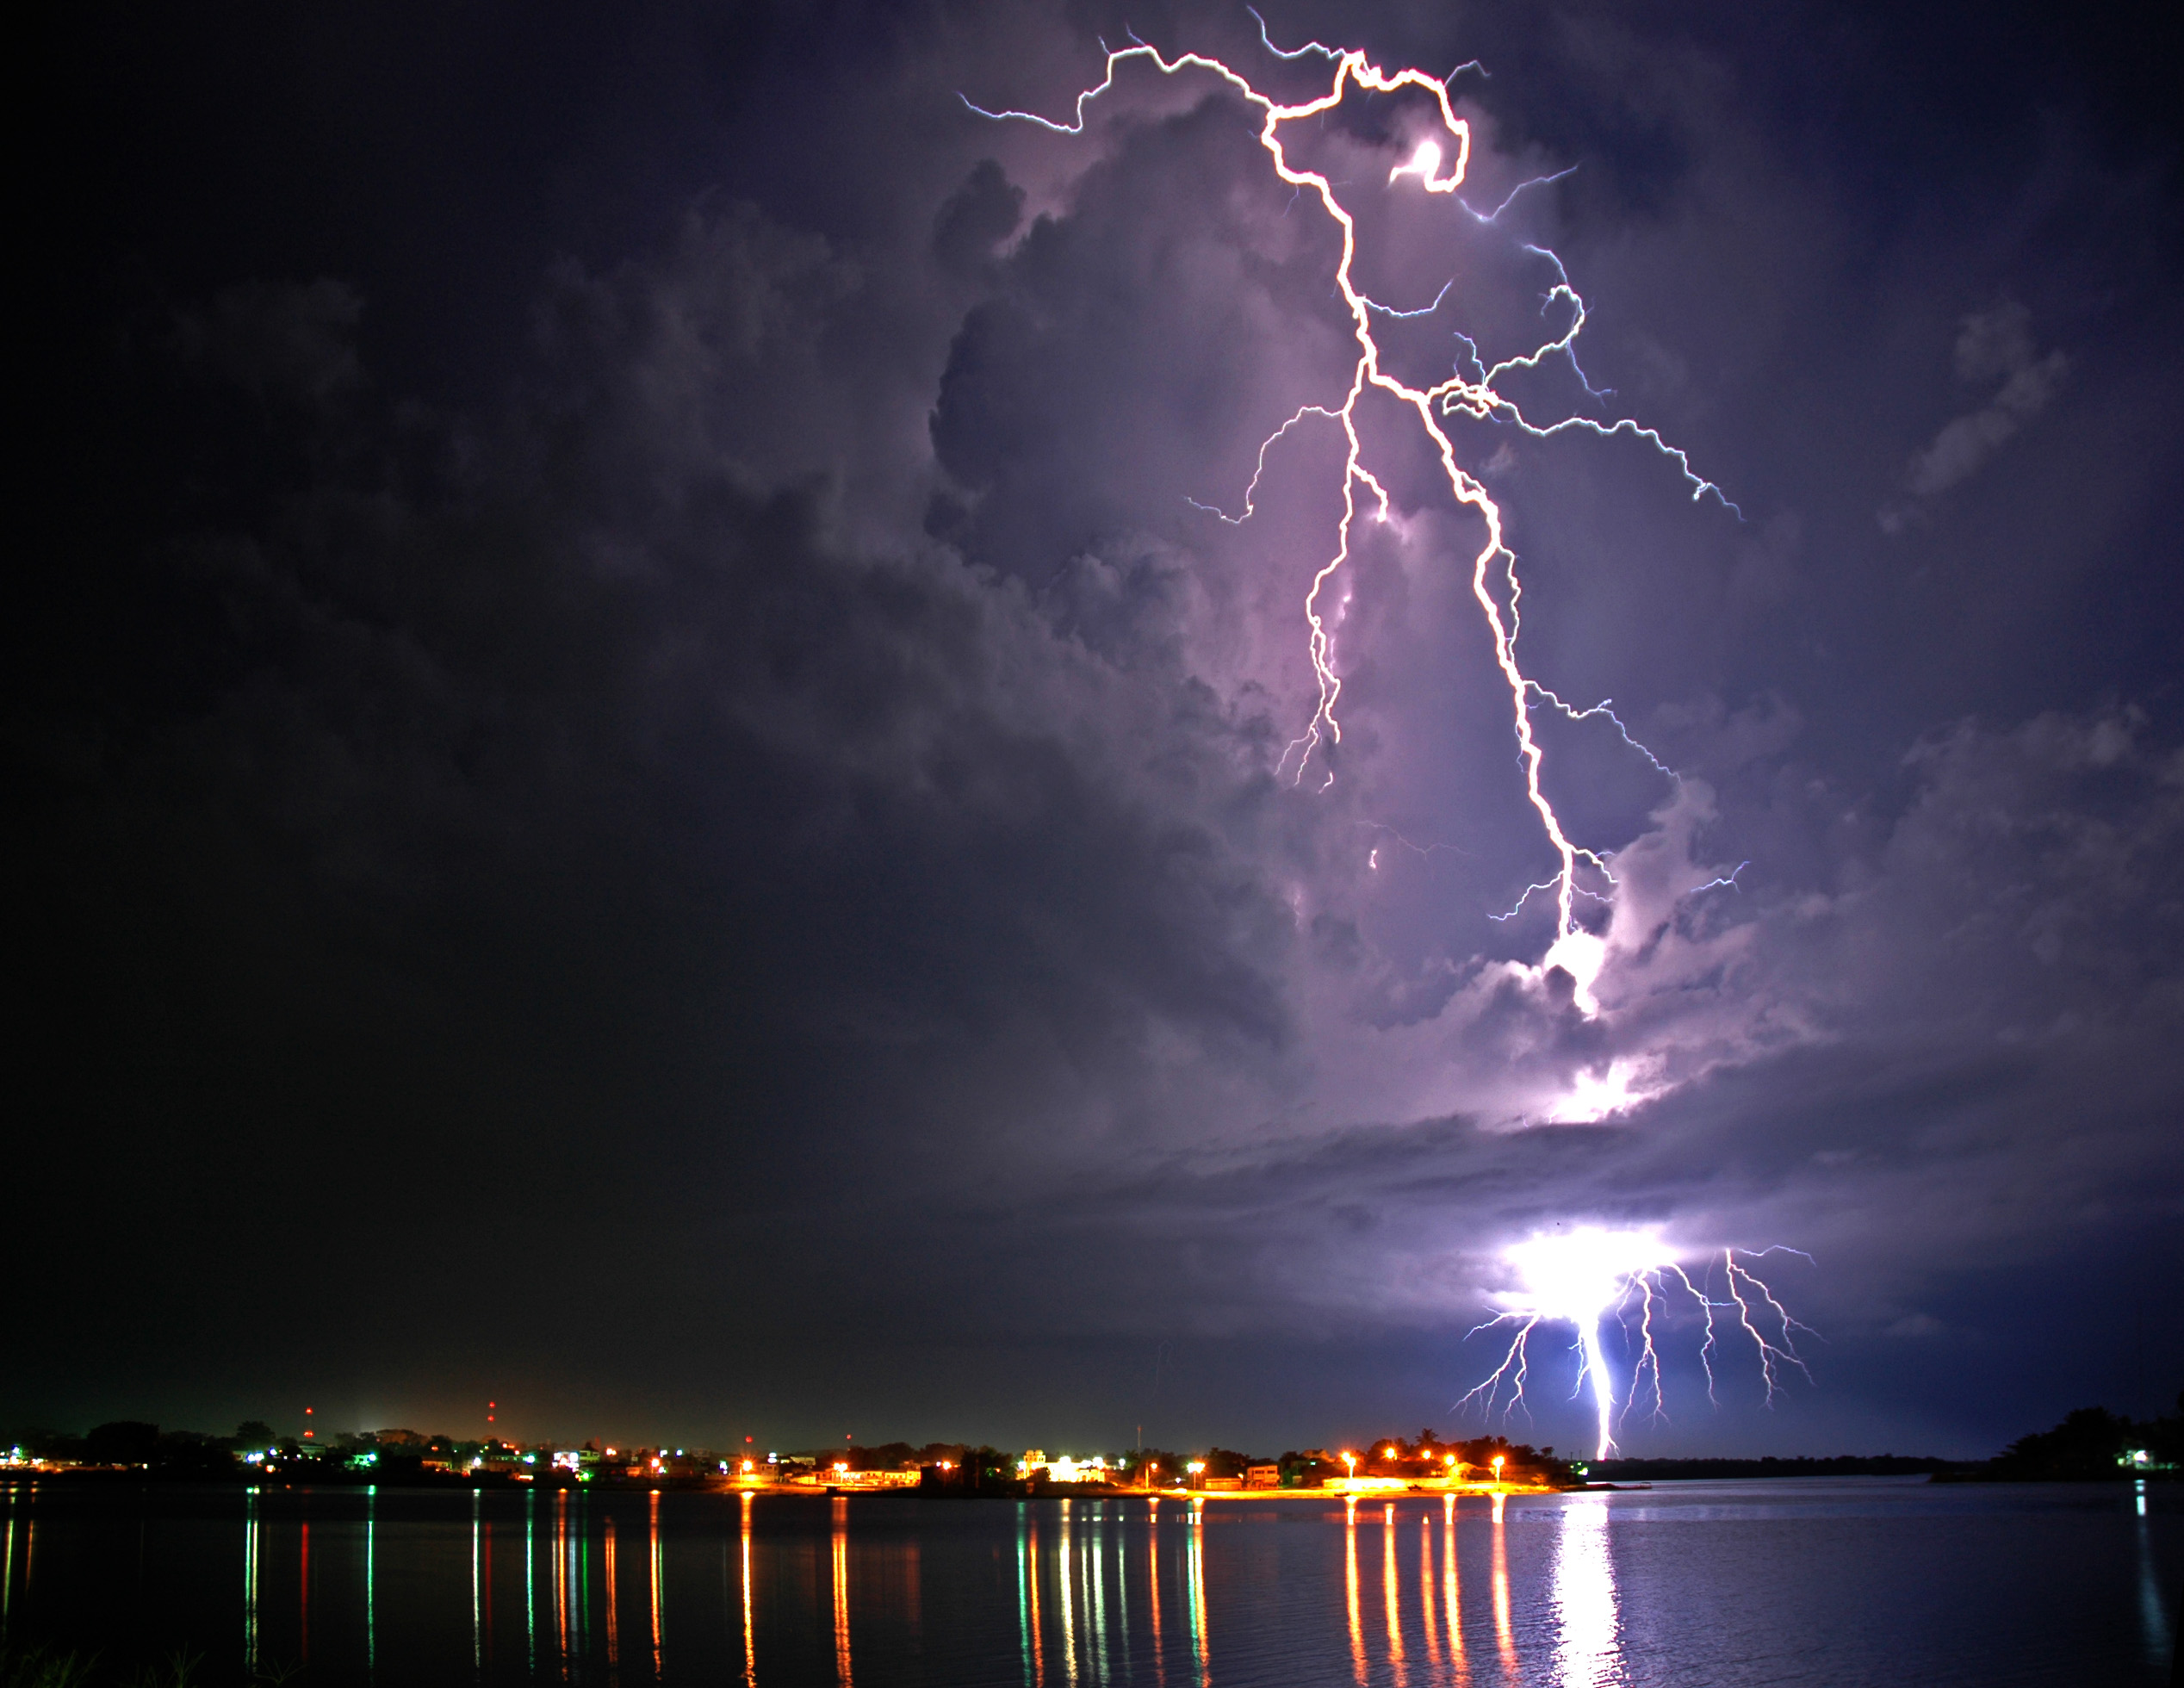 wallpaper Lightning Storm Wallpaper hd wallpaper background desktop 2536x1960